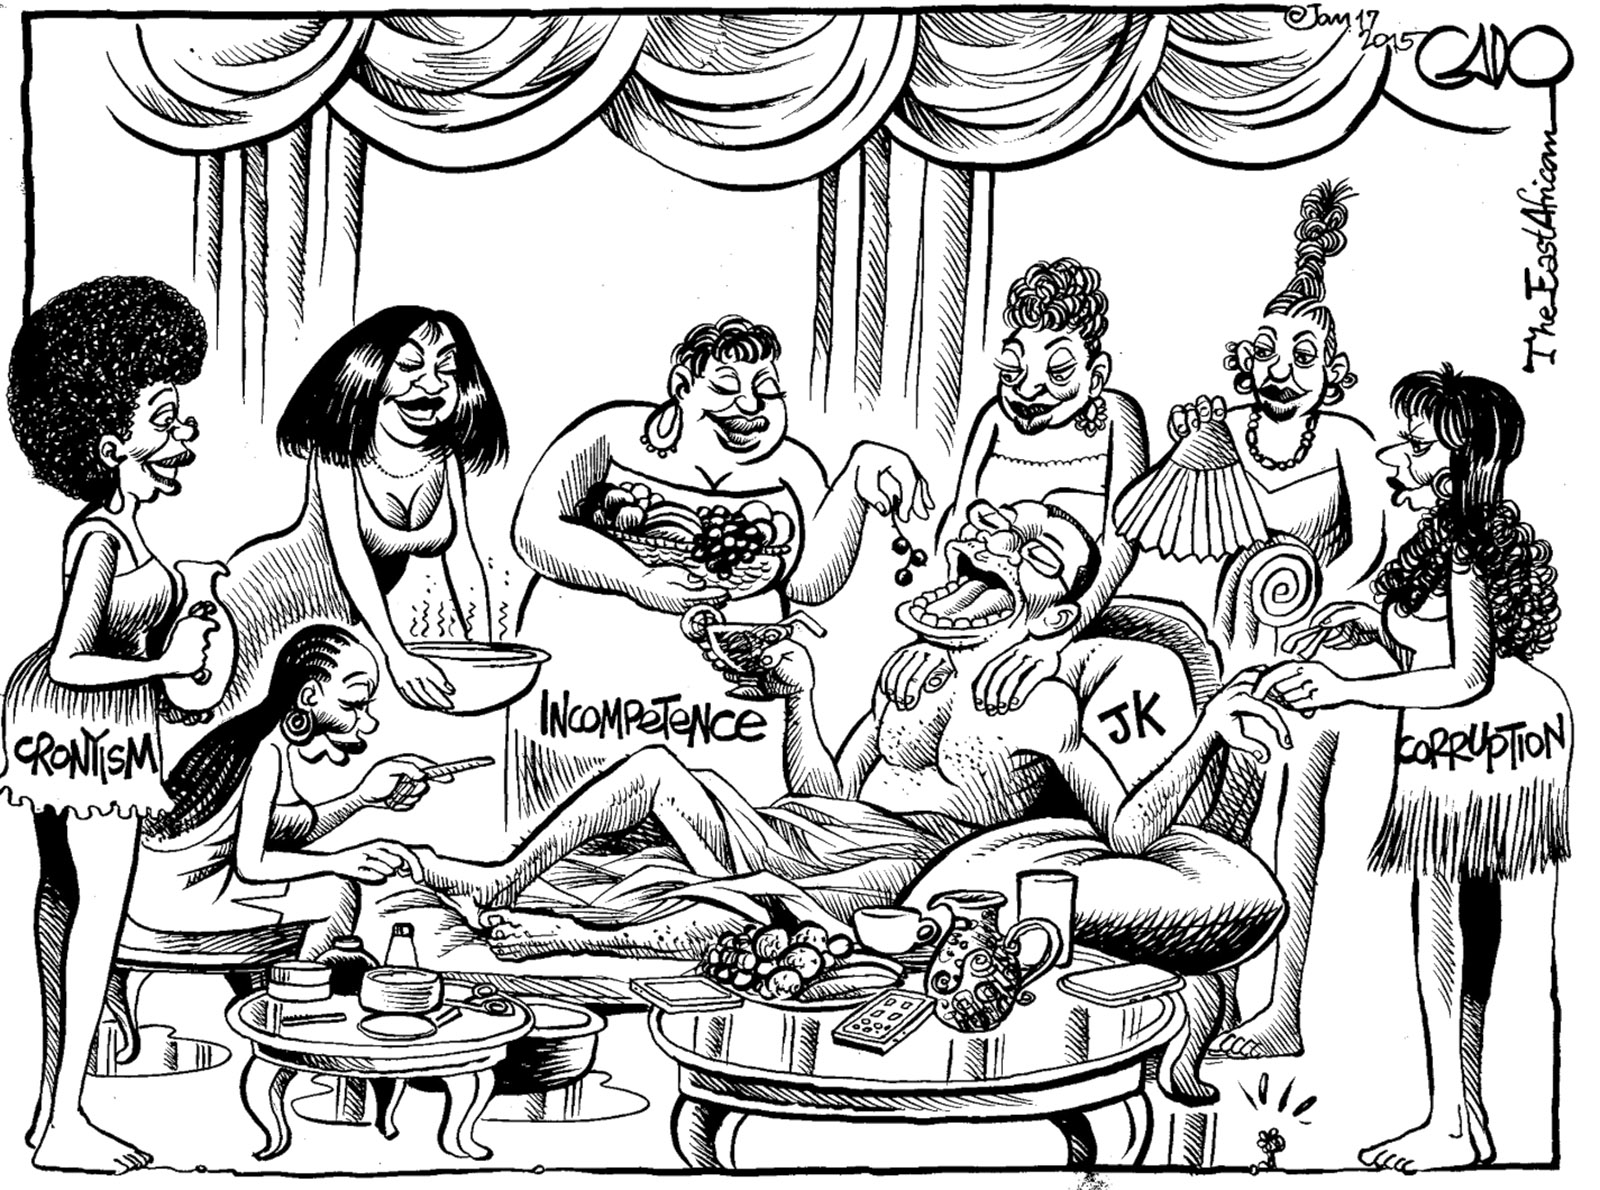 Tanzanian President Jakaya Kikwete surrounded by Cronyism, Incompetence, and Corruption; drawing by the well-known cartoonist Gado. Its publication in the East African in January 2015 led to the temporary banning of the newspaper from Tanzania and eventually to Gado's dismissal from its sister newspaper, the Nation, published in Nairobi, Kenya, where he had worked since 1992.